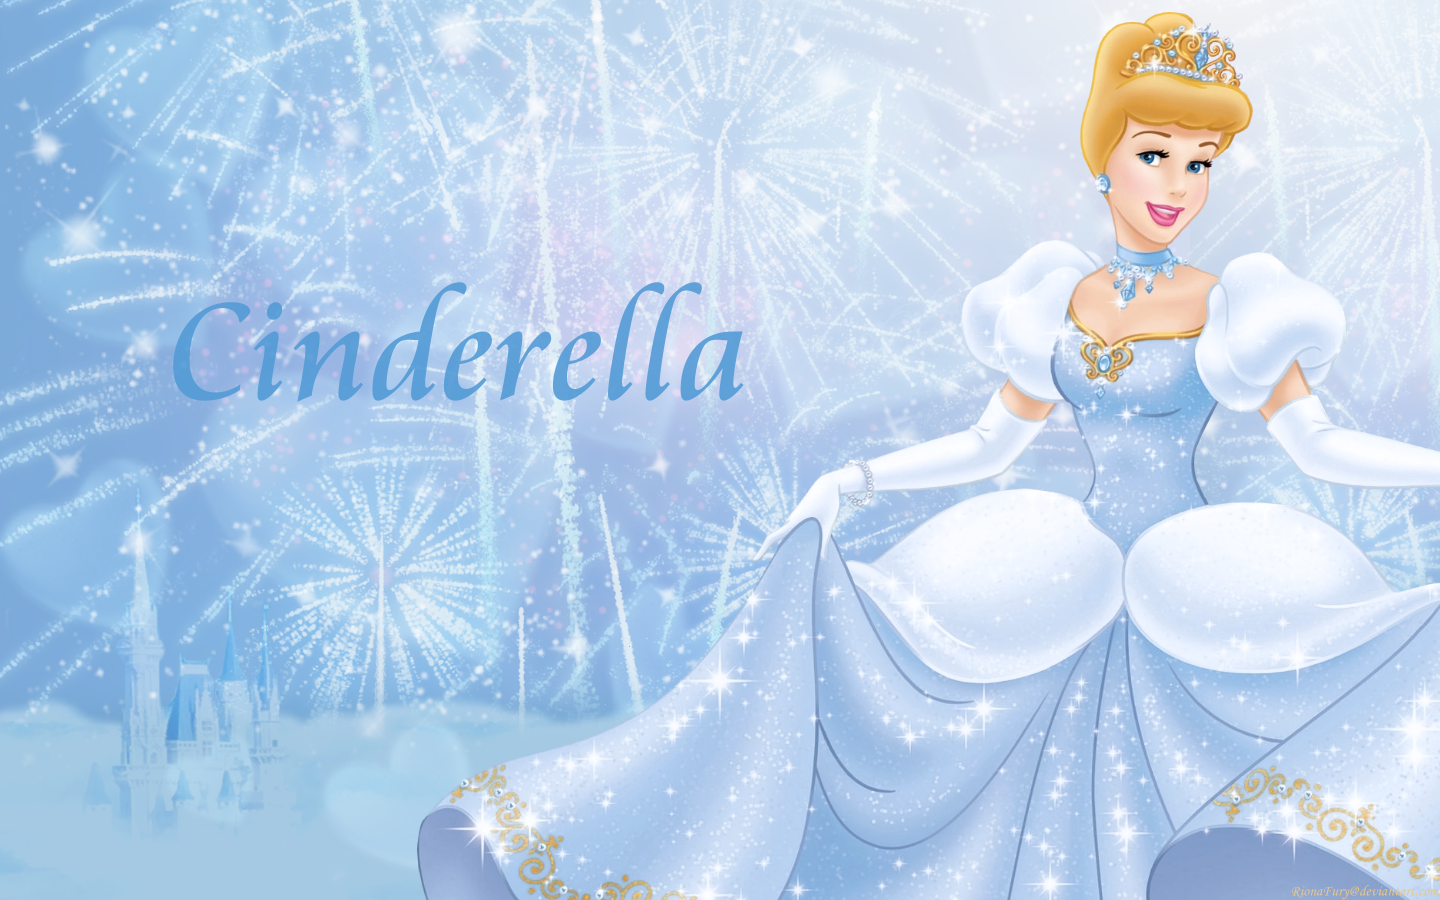 Top Beautiful Cinderella Photos, 1440x900 px